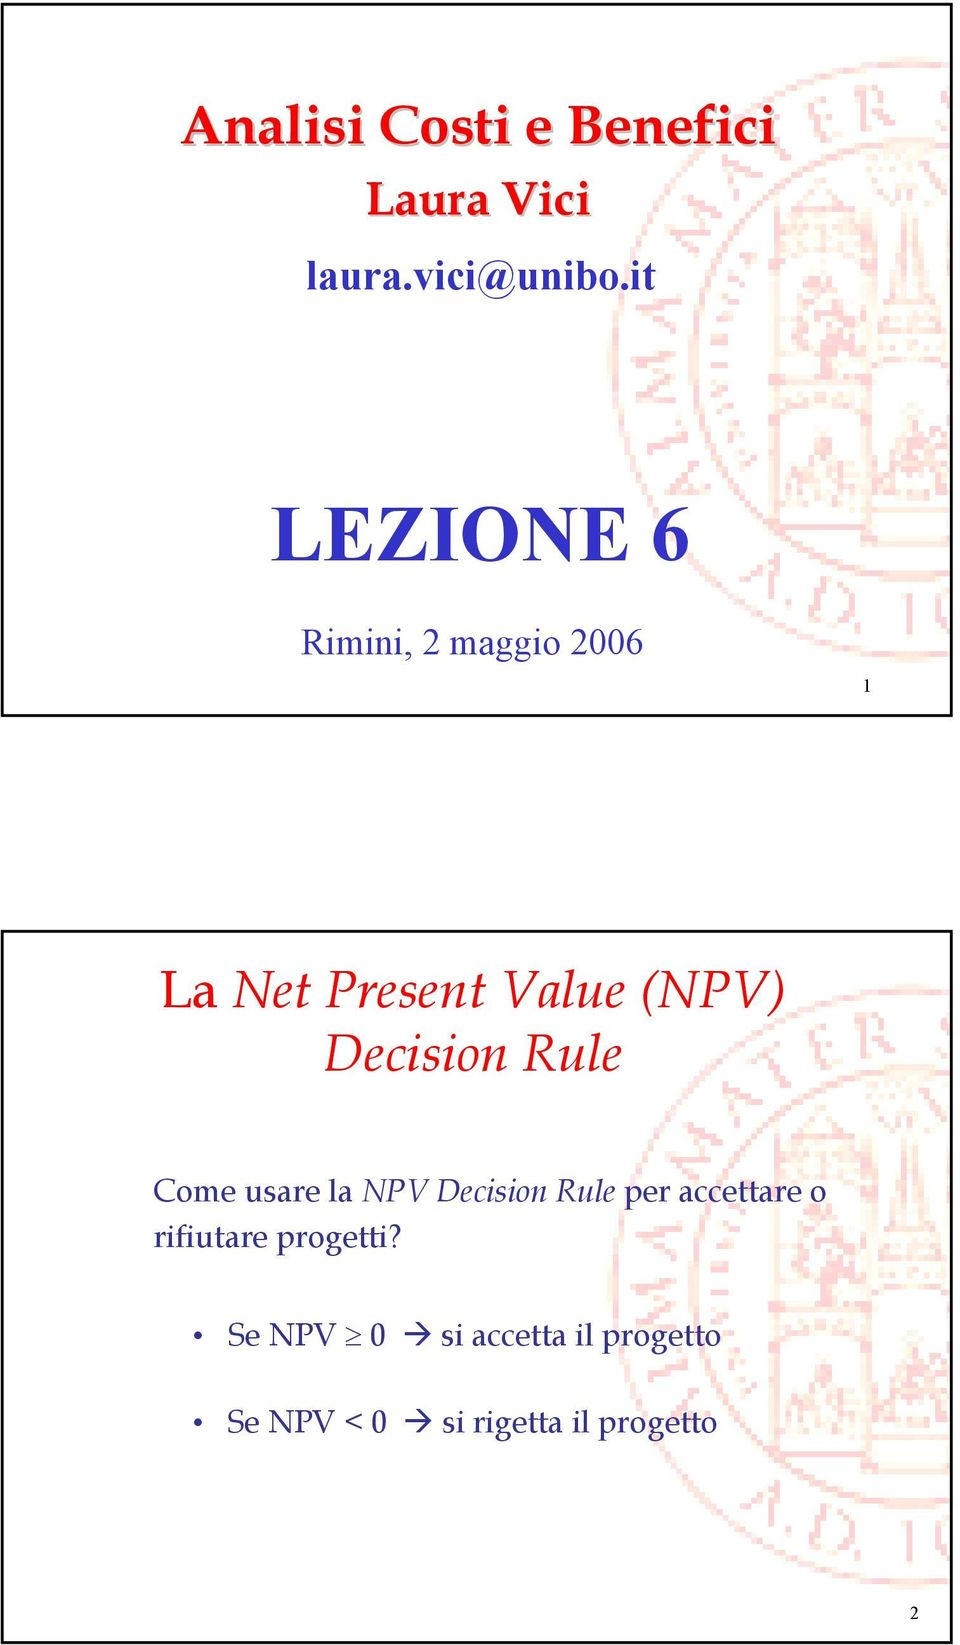 Decision Rule Come usare la NPV Decision Rule per accettare o